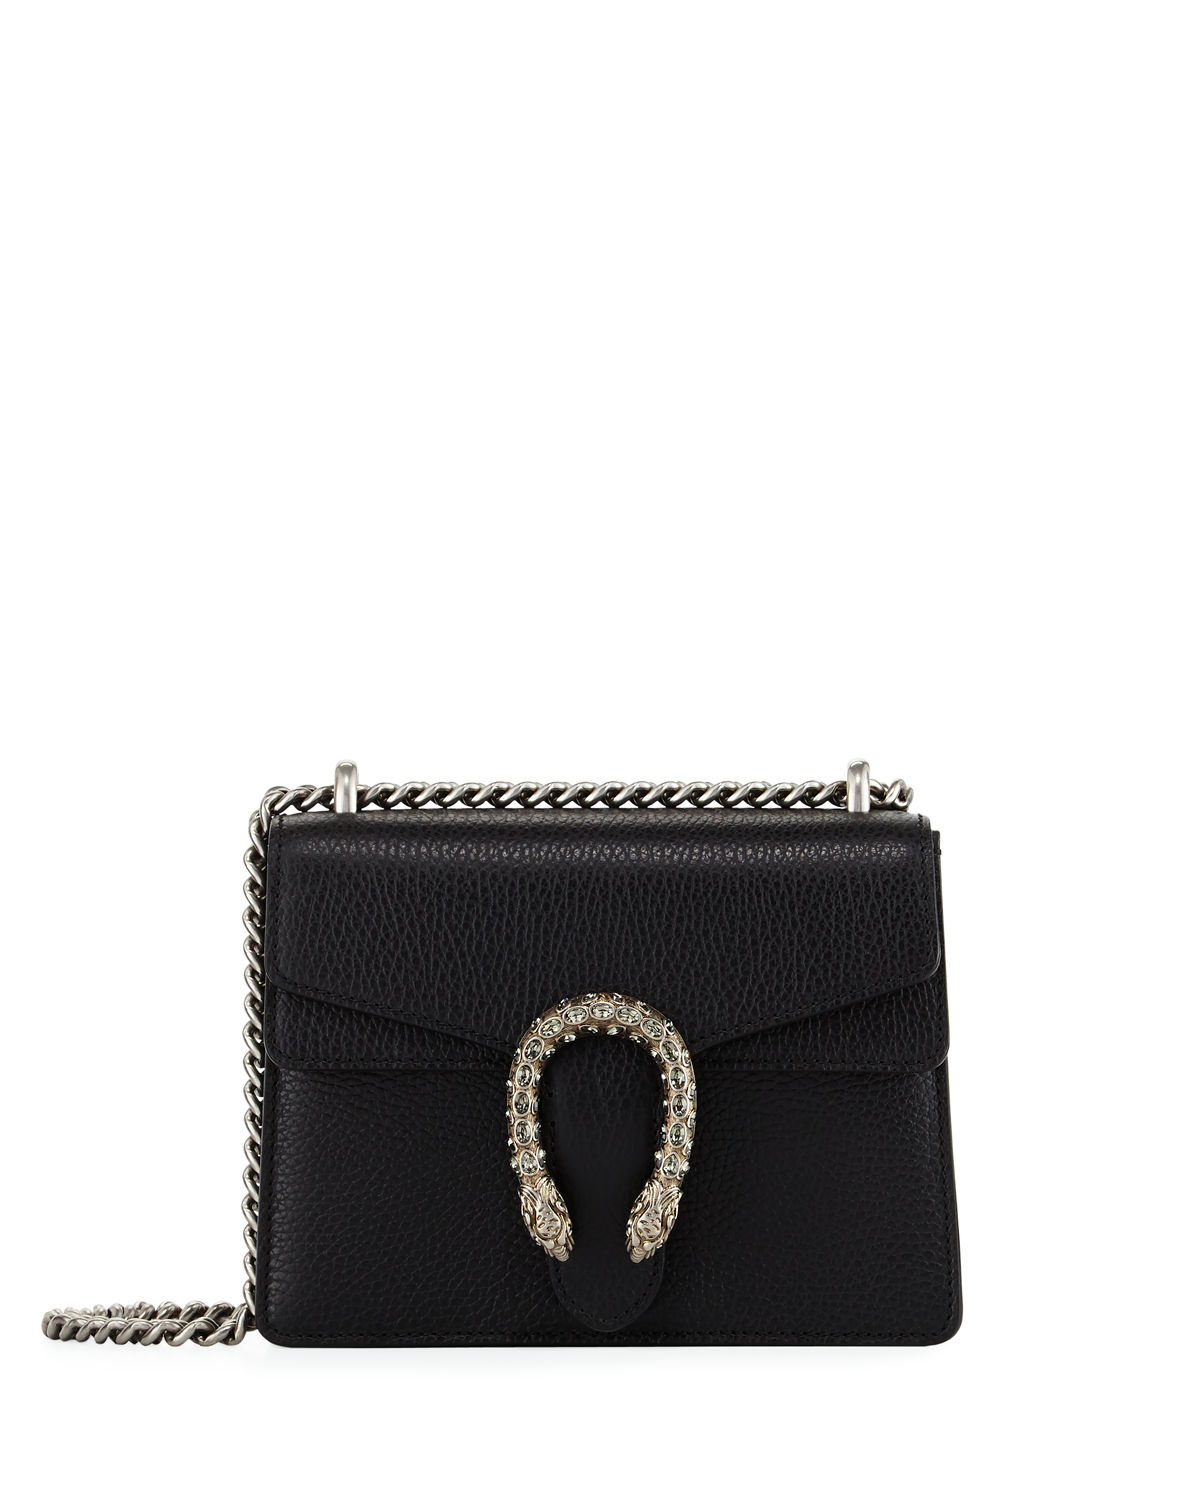 5a369989db59 Gucci Dionysus Leather Crystal Mini Bag | Neiman Marcus